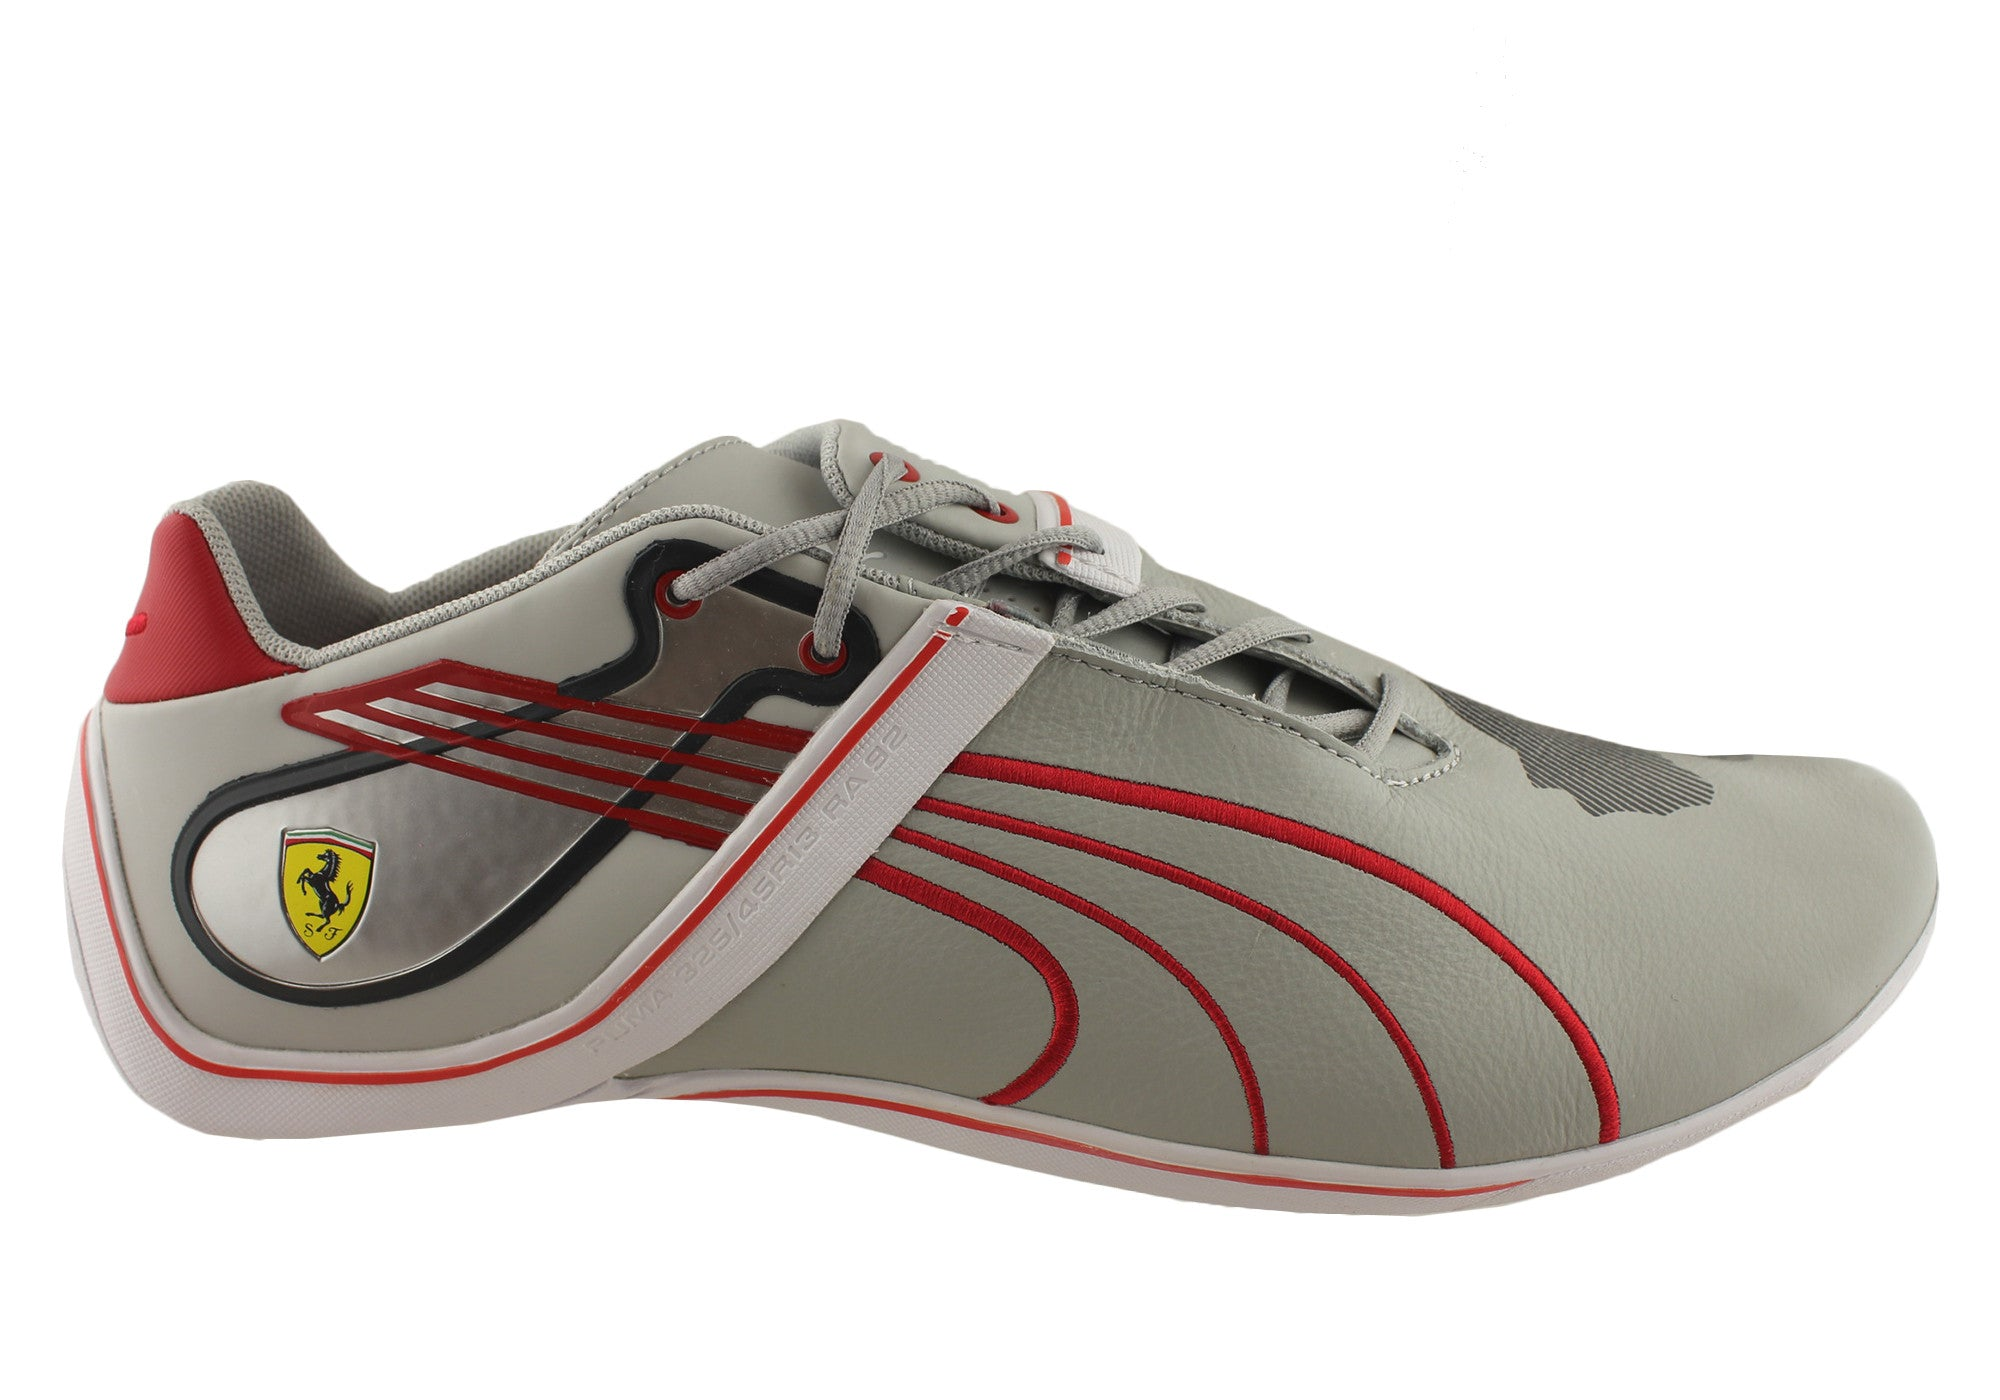 store sho shokids racing litolo msrp menaposs purchase kids trainerslargest trainers men leather shoessale shoes largest ferrari online puma mens sneakers premium sale p fashion sf s everfit